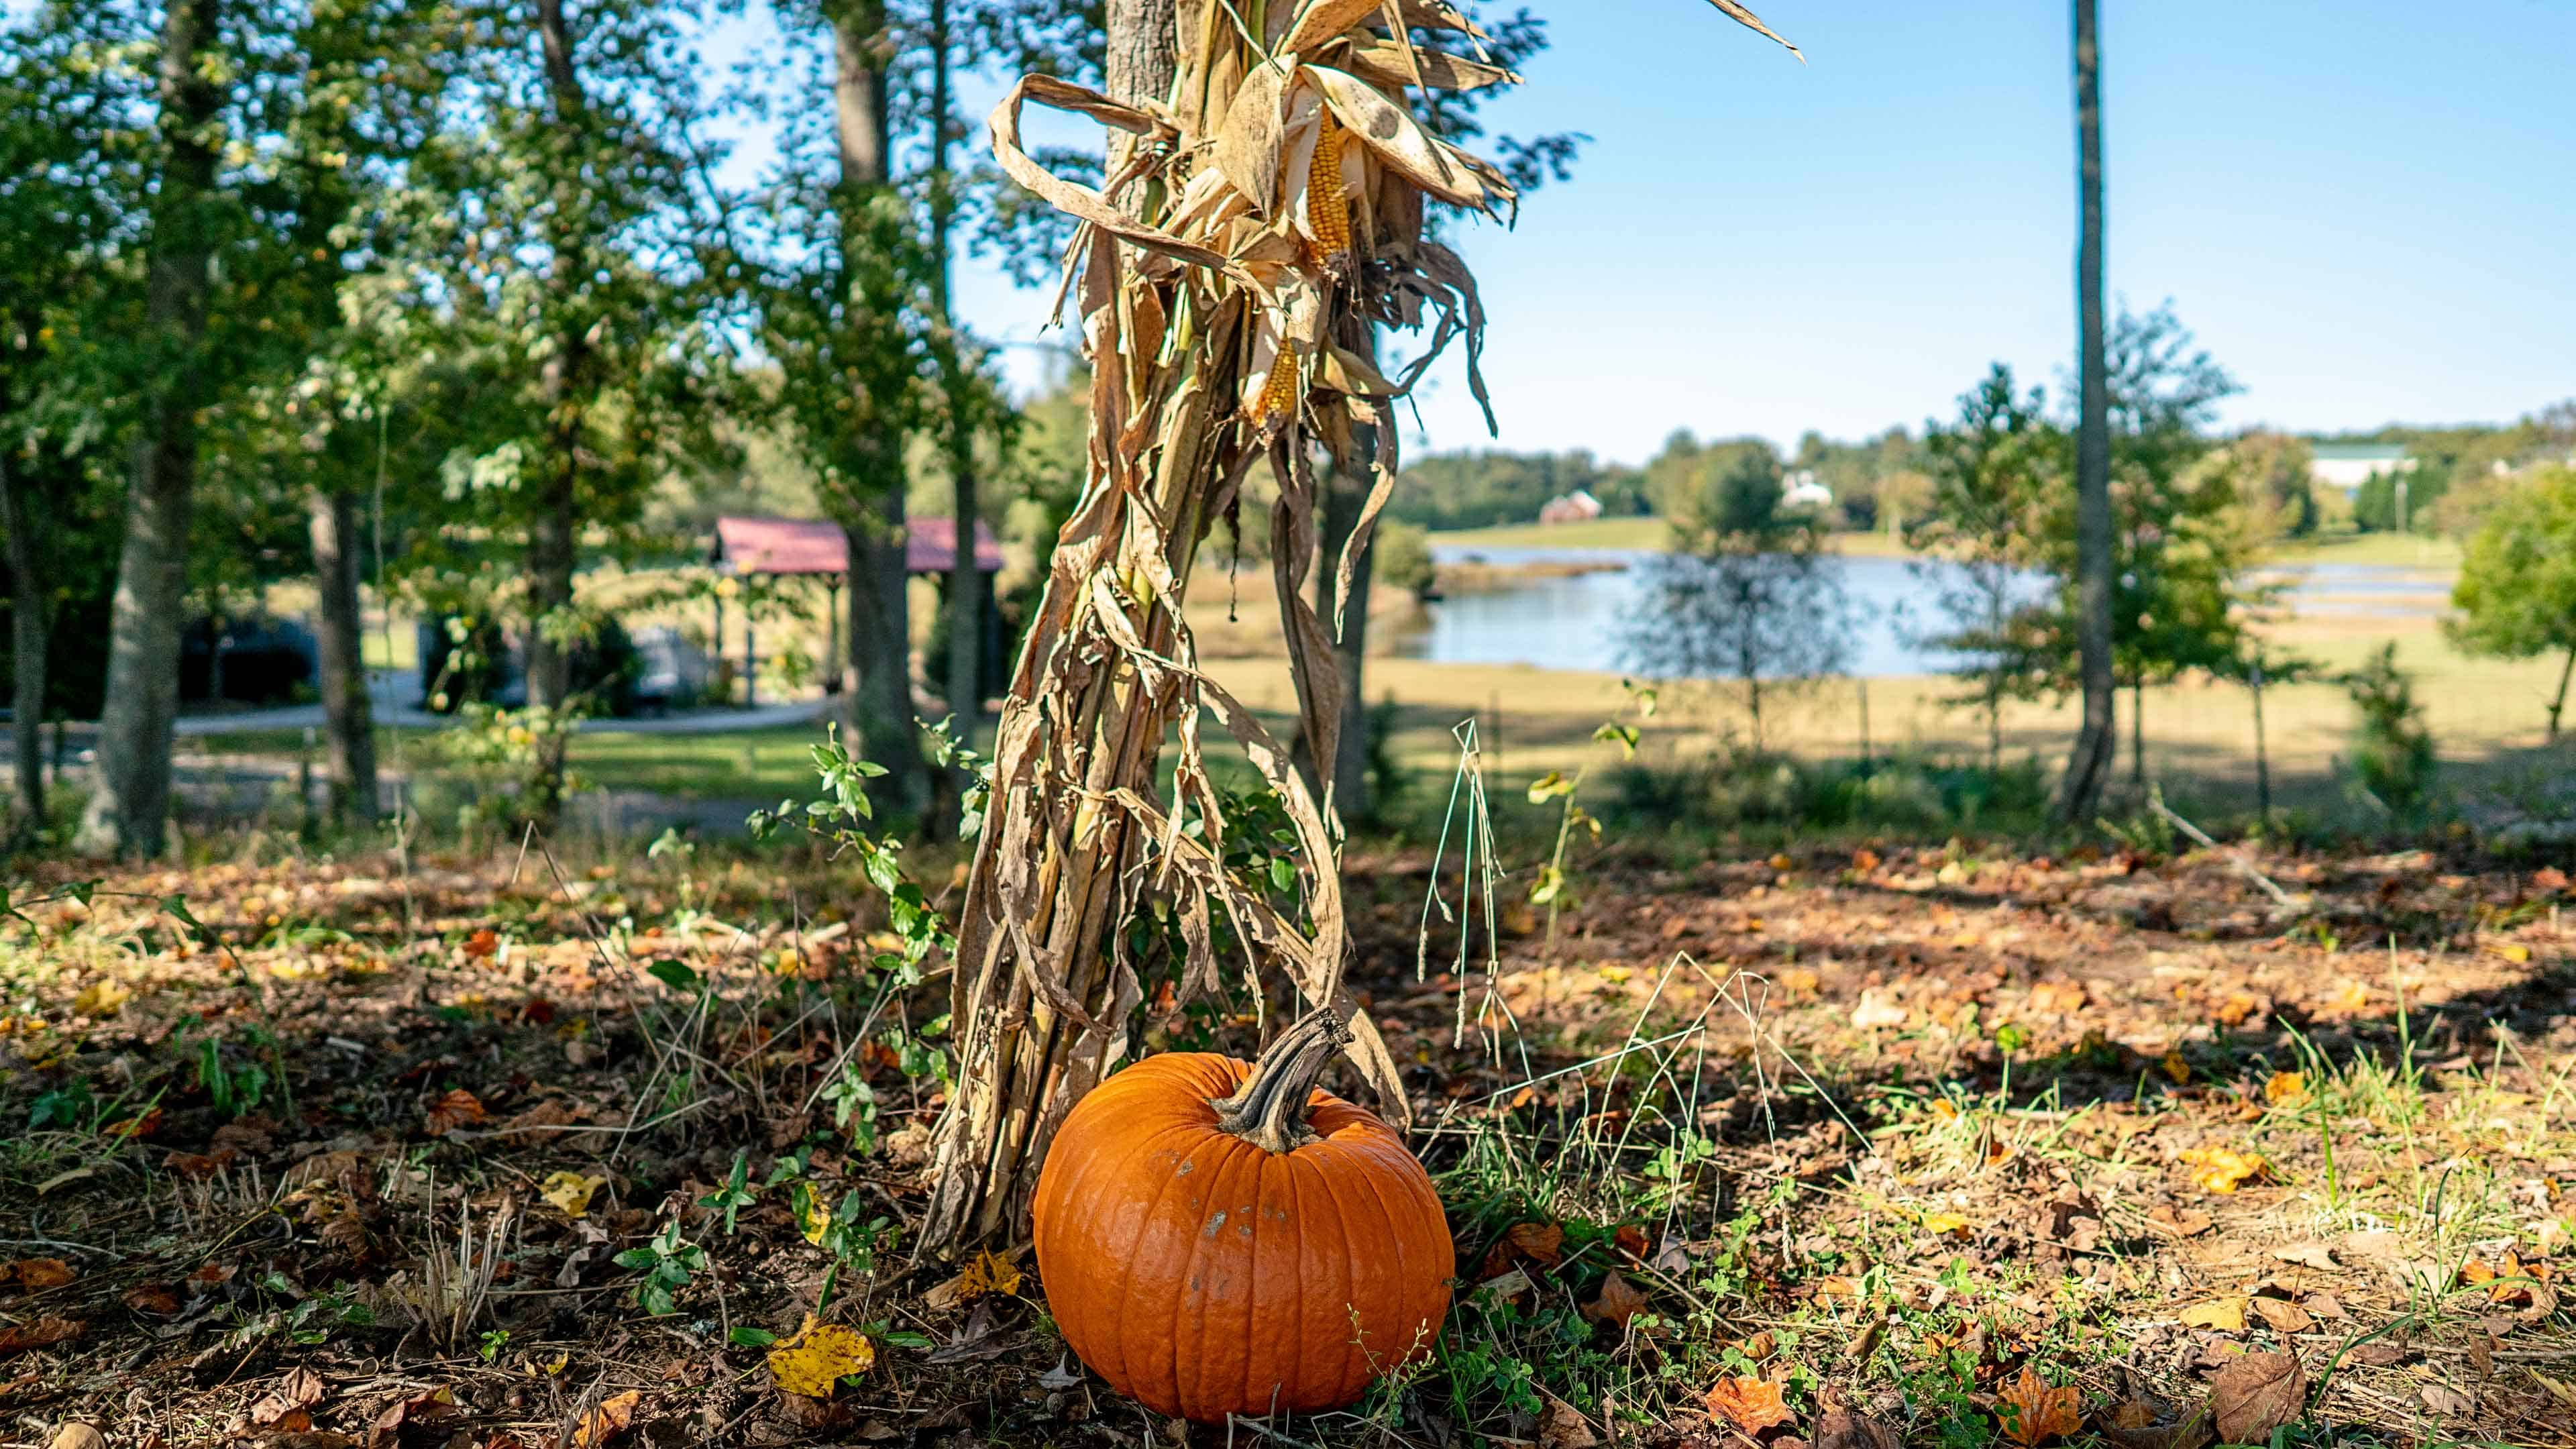 rural families' Halloween activities are a little different than families whol live in town.